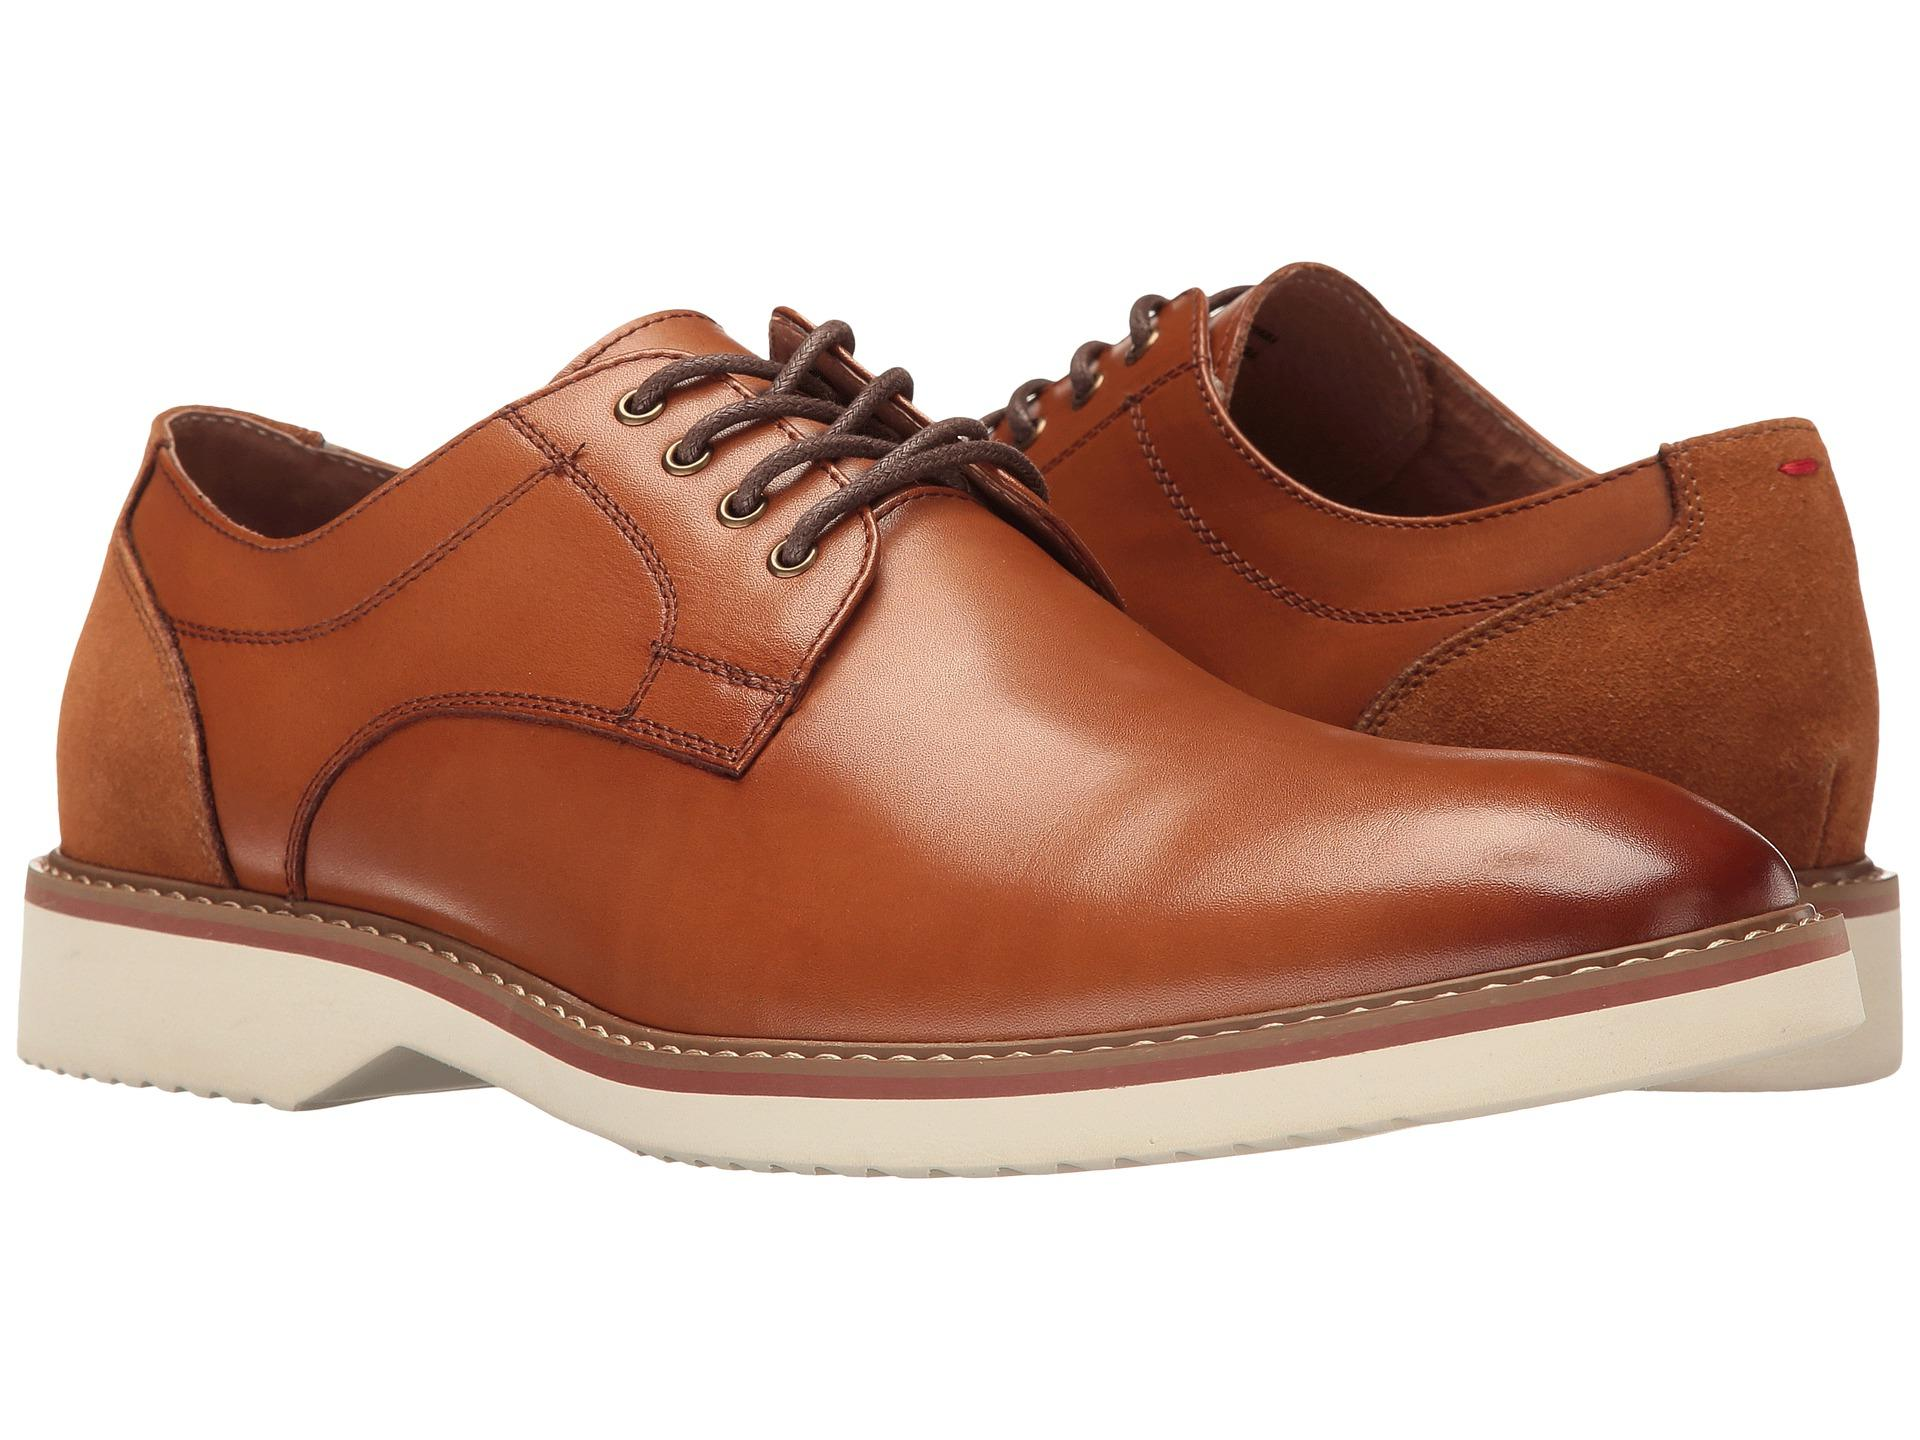 Florsheim Men's Union Plain Oxford Breathable Cognac leather